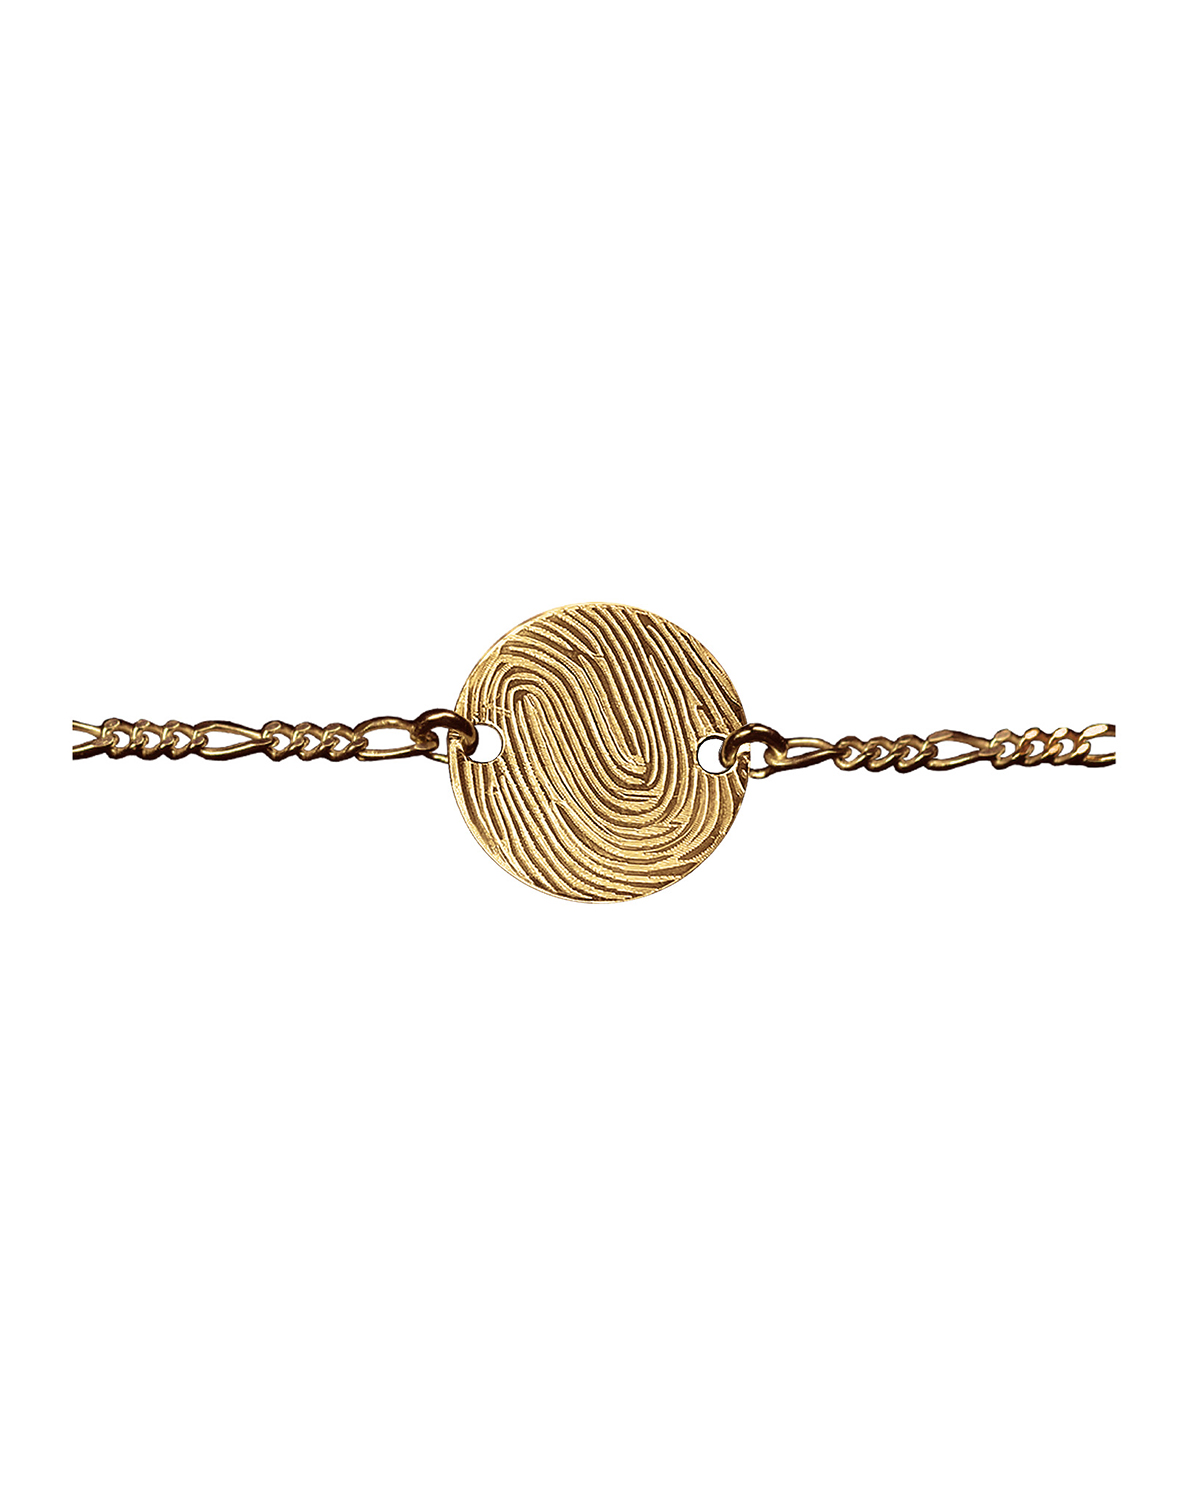 Huella Bracelet, Gold-plated